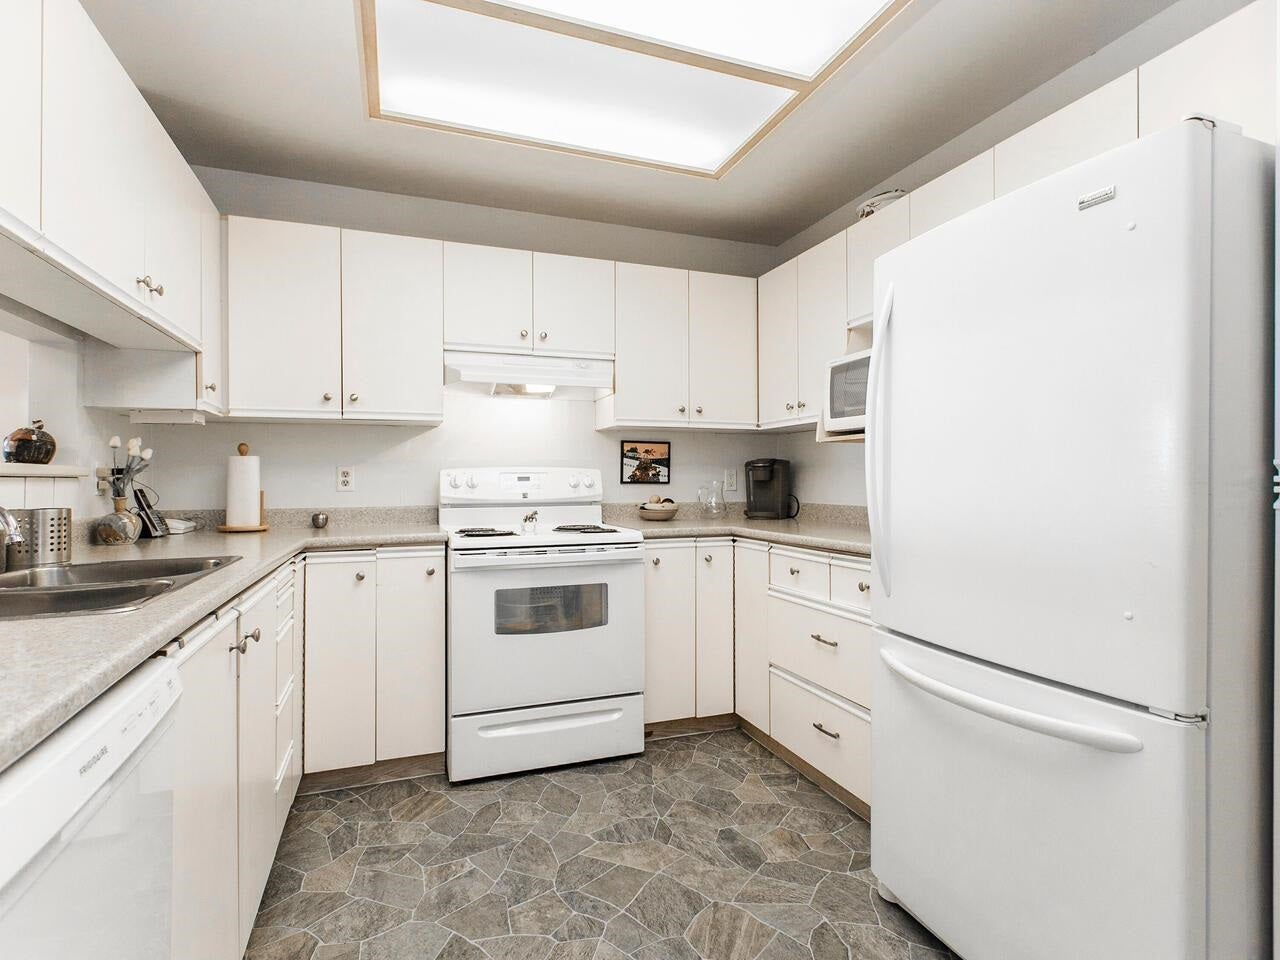 104 2800 CHESTERFIELD AVENUE - Upper Lonsdale Apartment/Condo for sale, 2 Bedrooms (R2603260) - #12